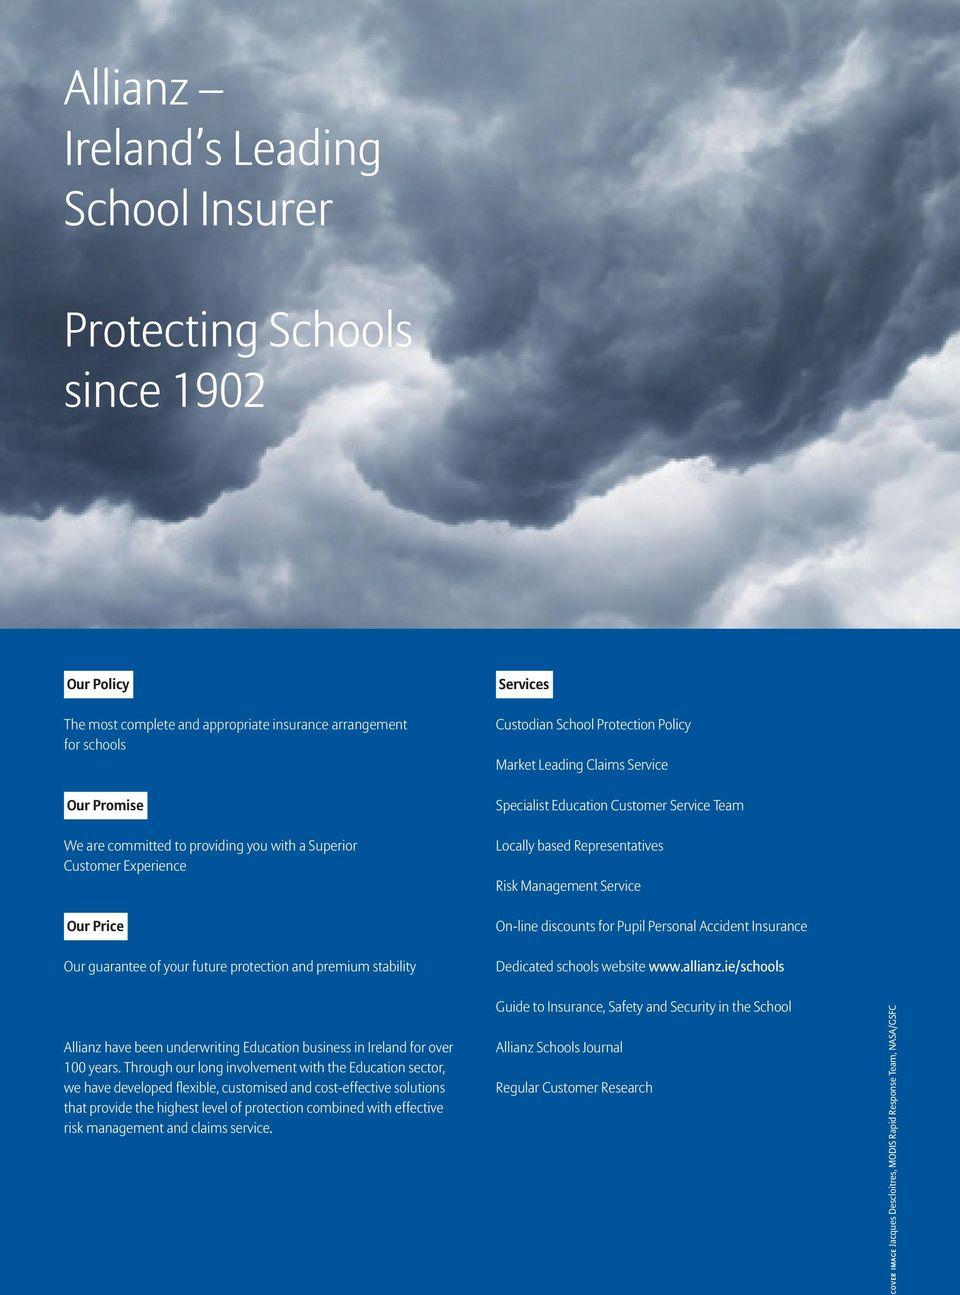 Education Customer Service Team Locally based Representatives Risk Management Service On-line discounts for Pupil Personal Accident Insurance Dedicated schools website www.allianz.